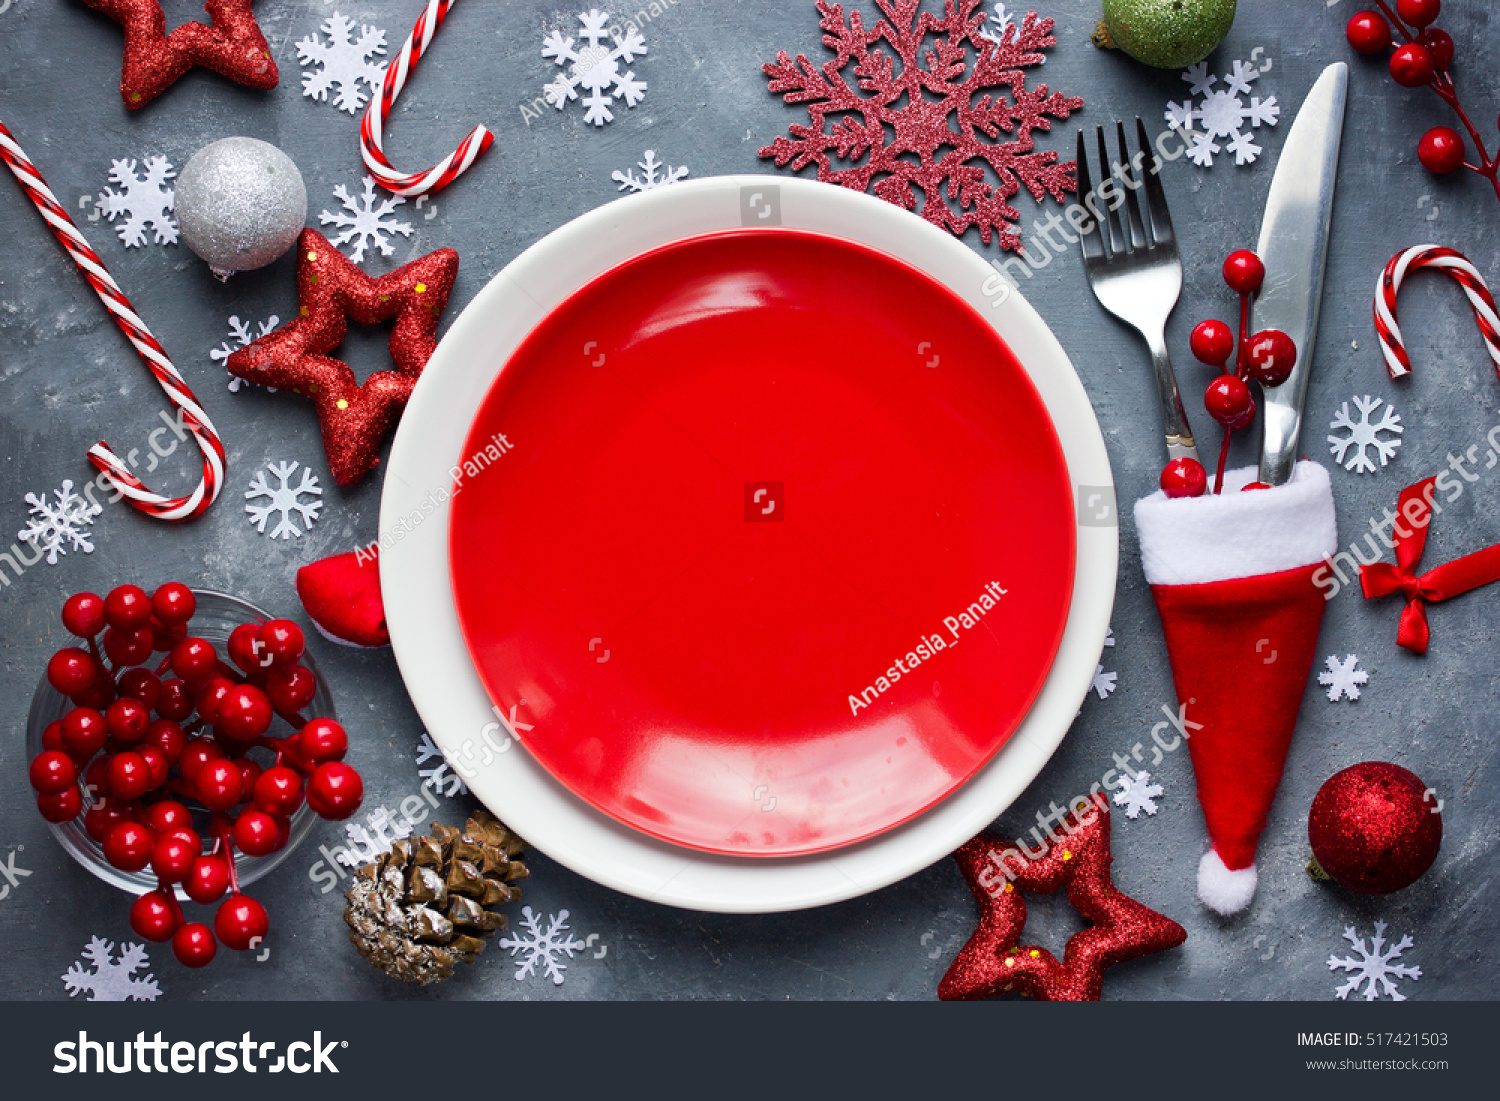 christmas table place setting with empty red plate cutlery in santa hat with festive decorations - Candy Cane Christmas Table Decorations